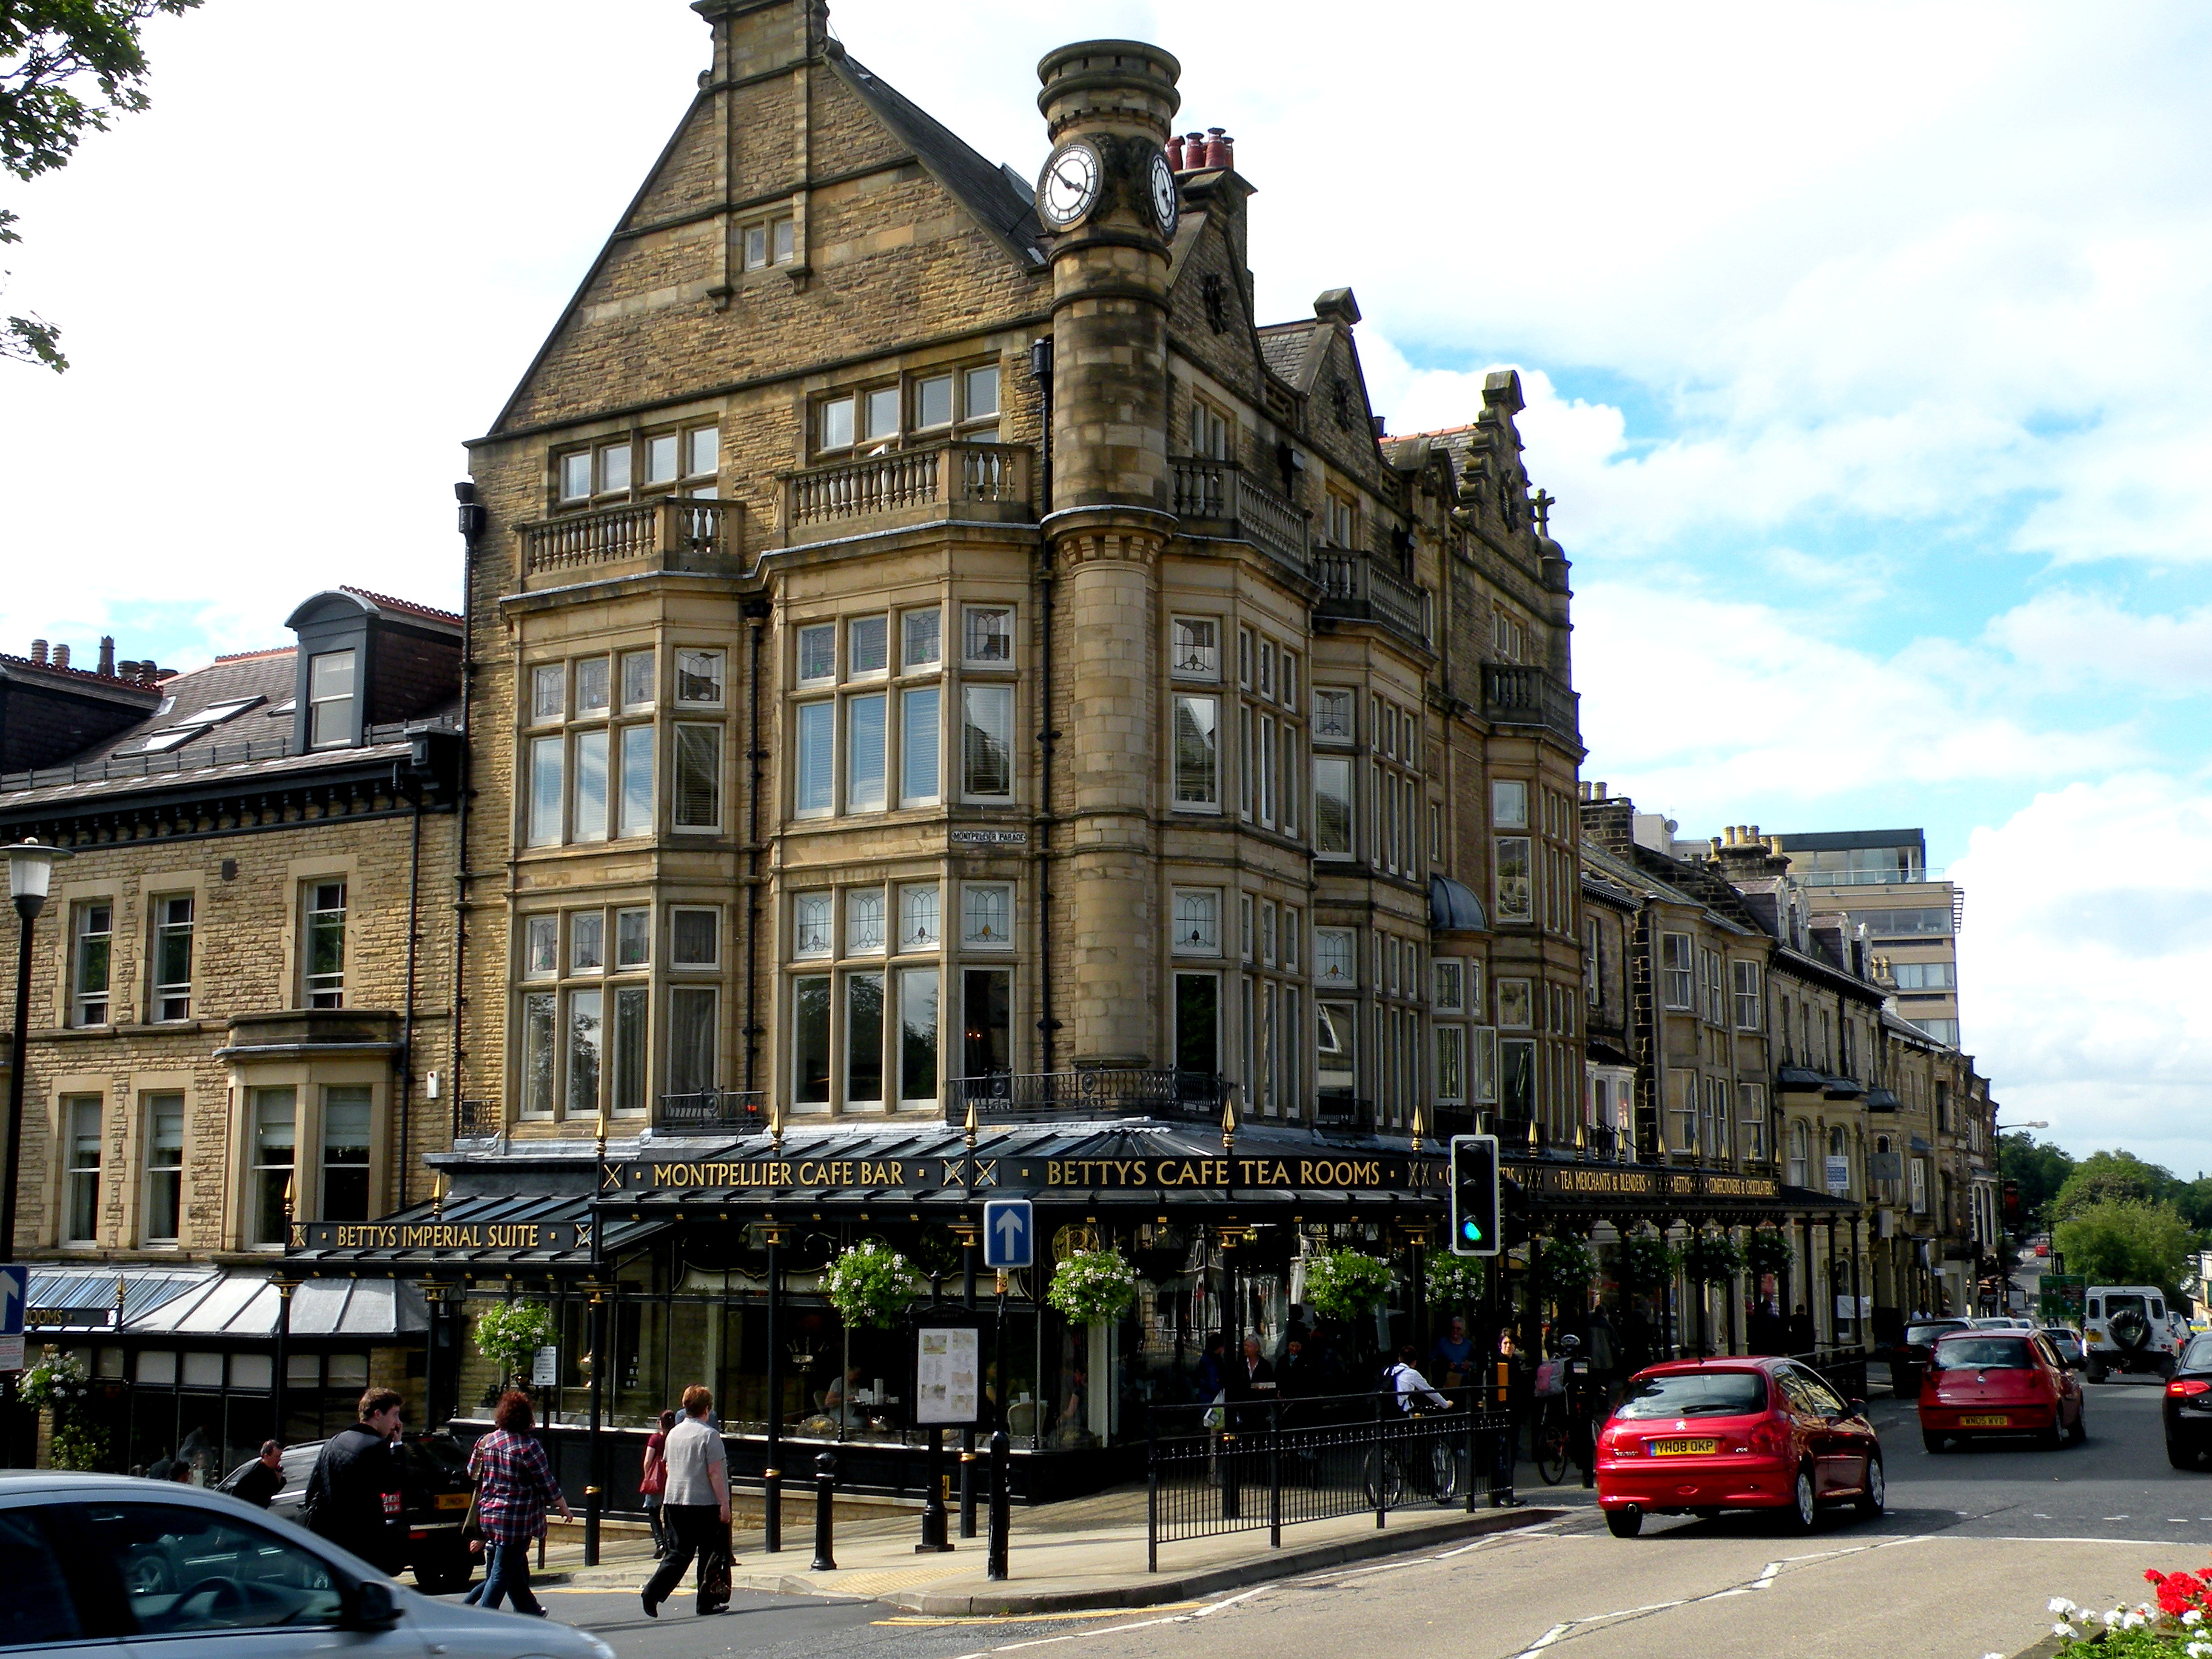 harrogate online dating Harrogate's sexy mature gilf grannies, cougars, seniors and hot milf's ready for sex chat and dirty dates in harrogate.